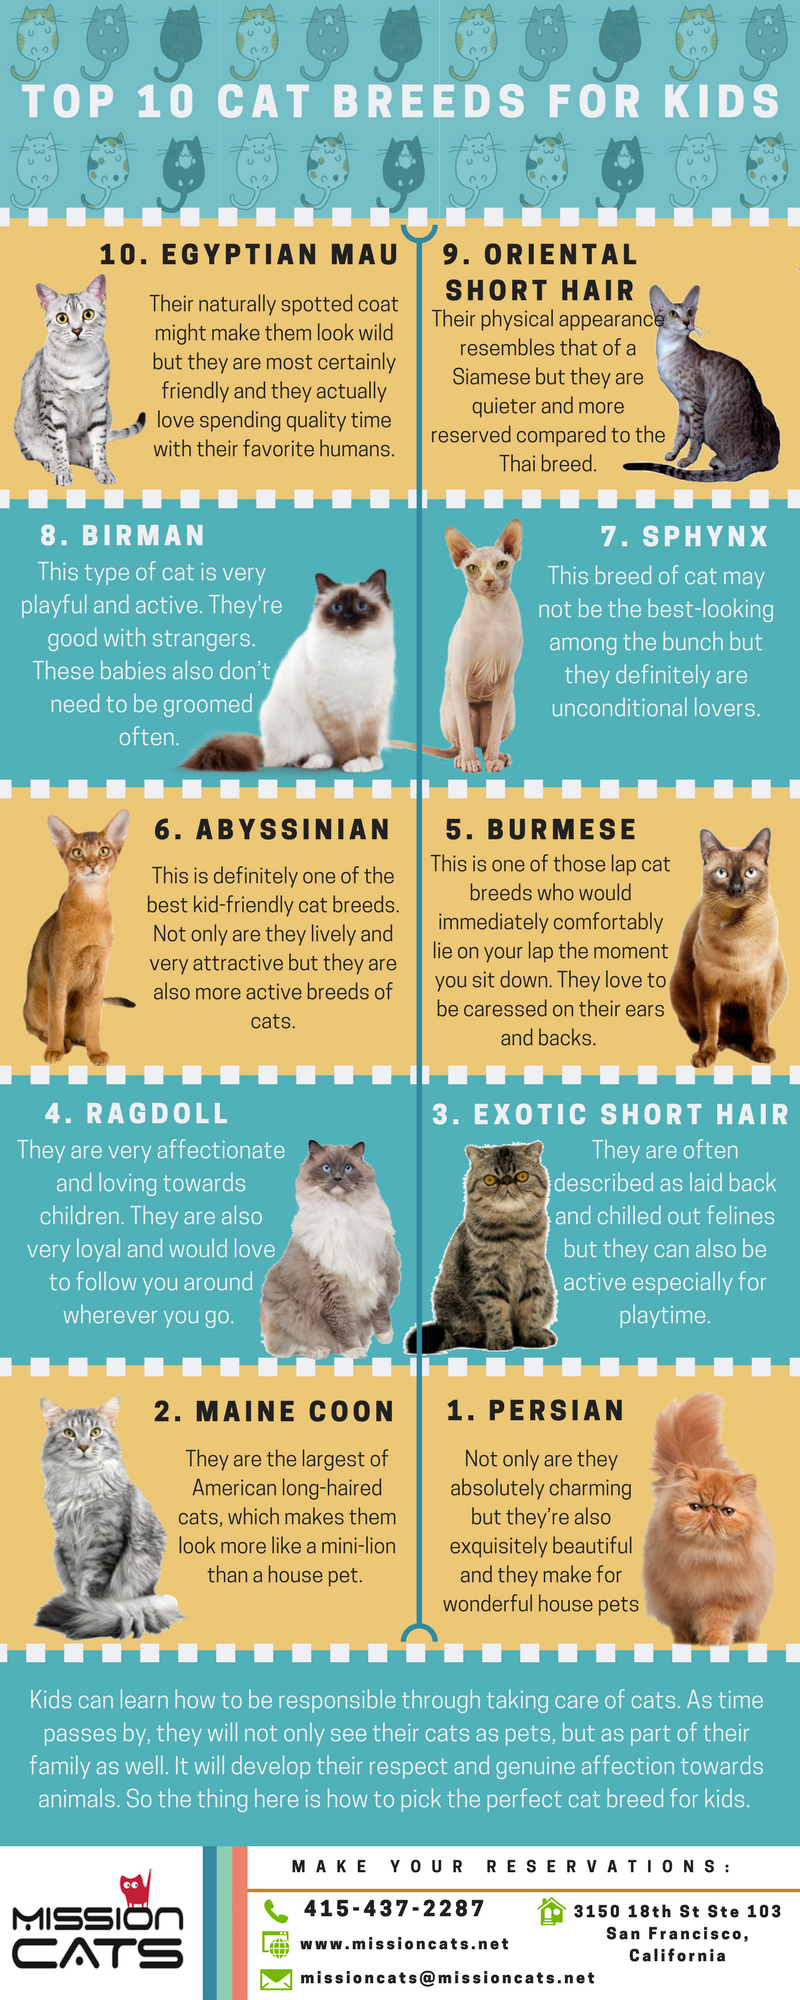 Top 10 Cat Breeds For Kids Mission Cats